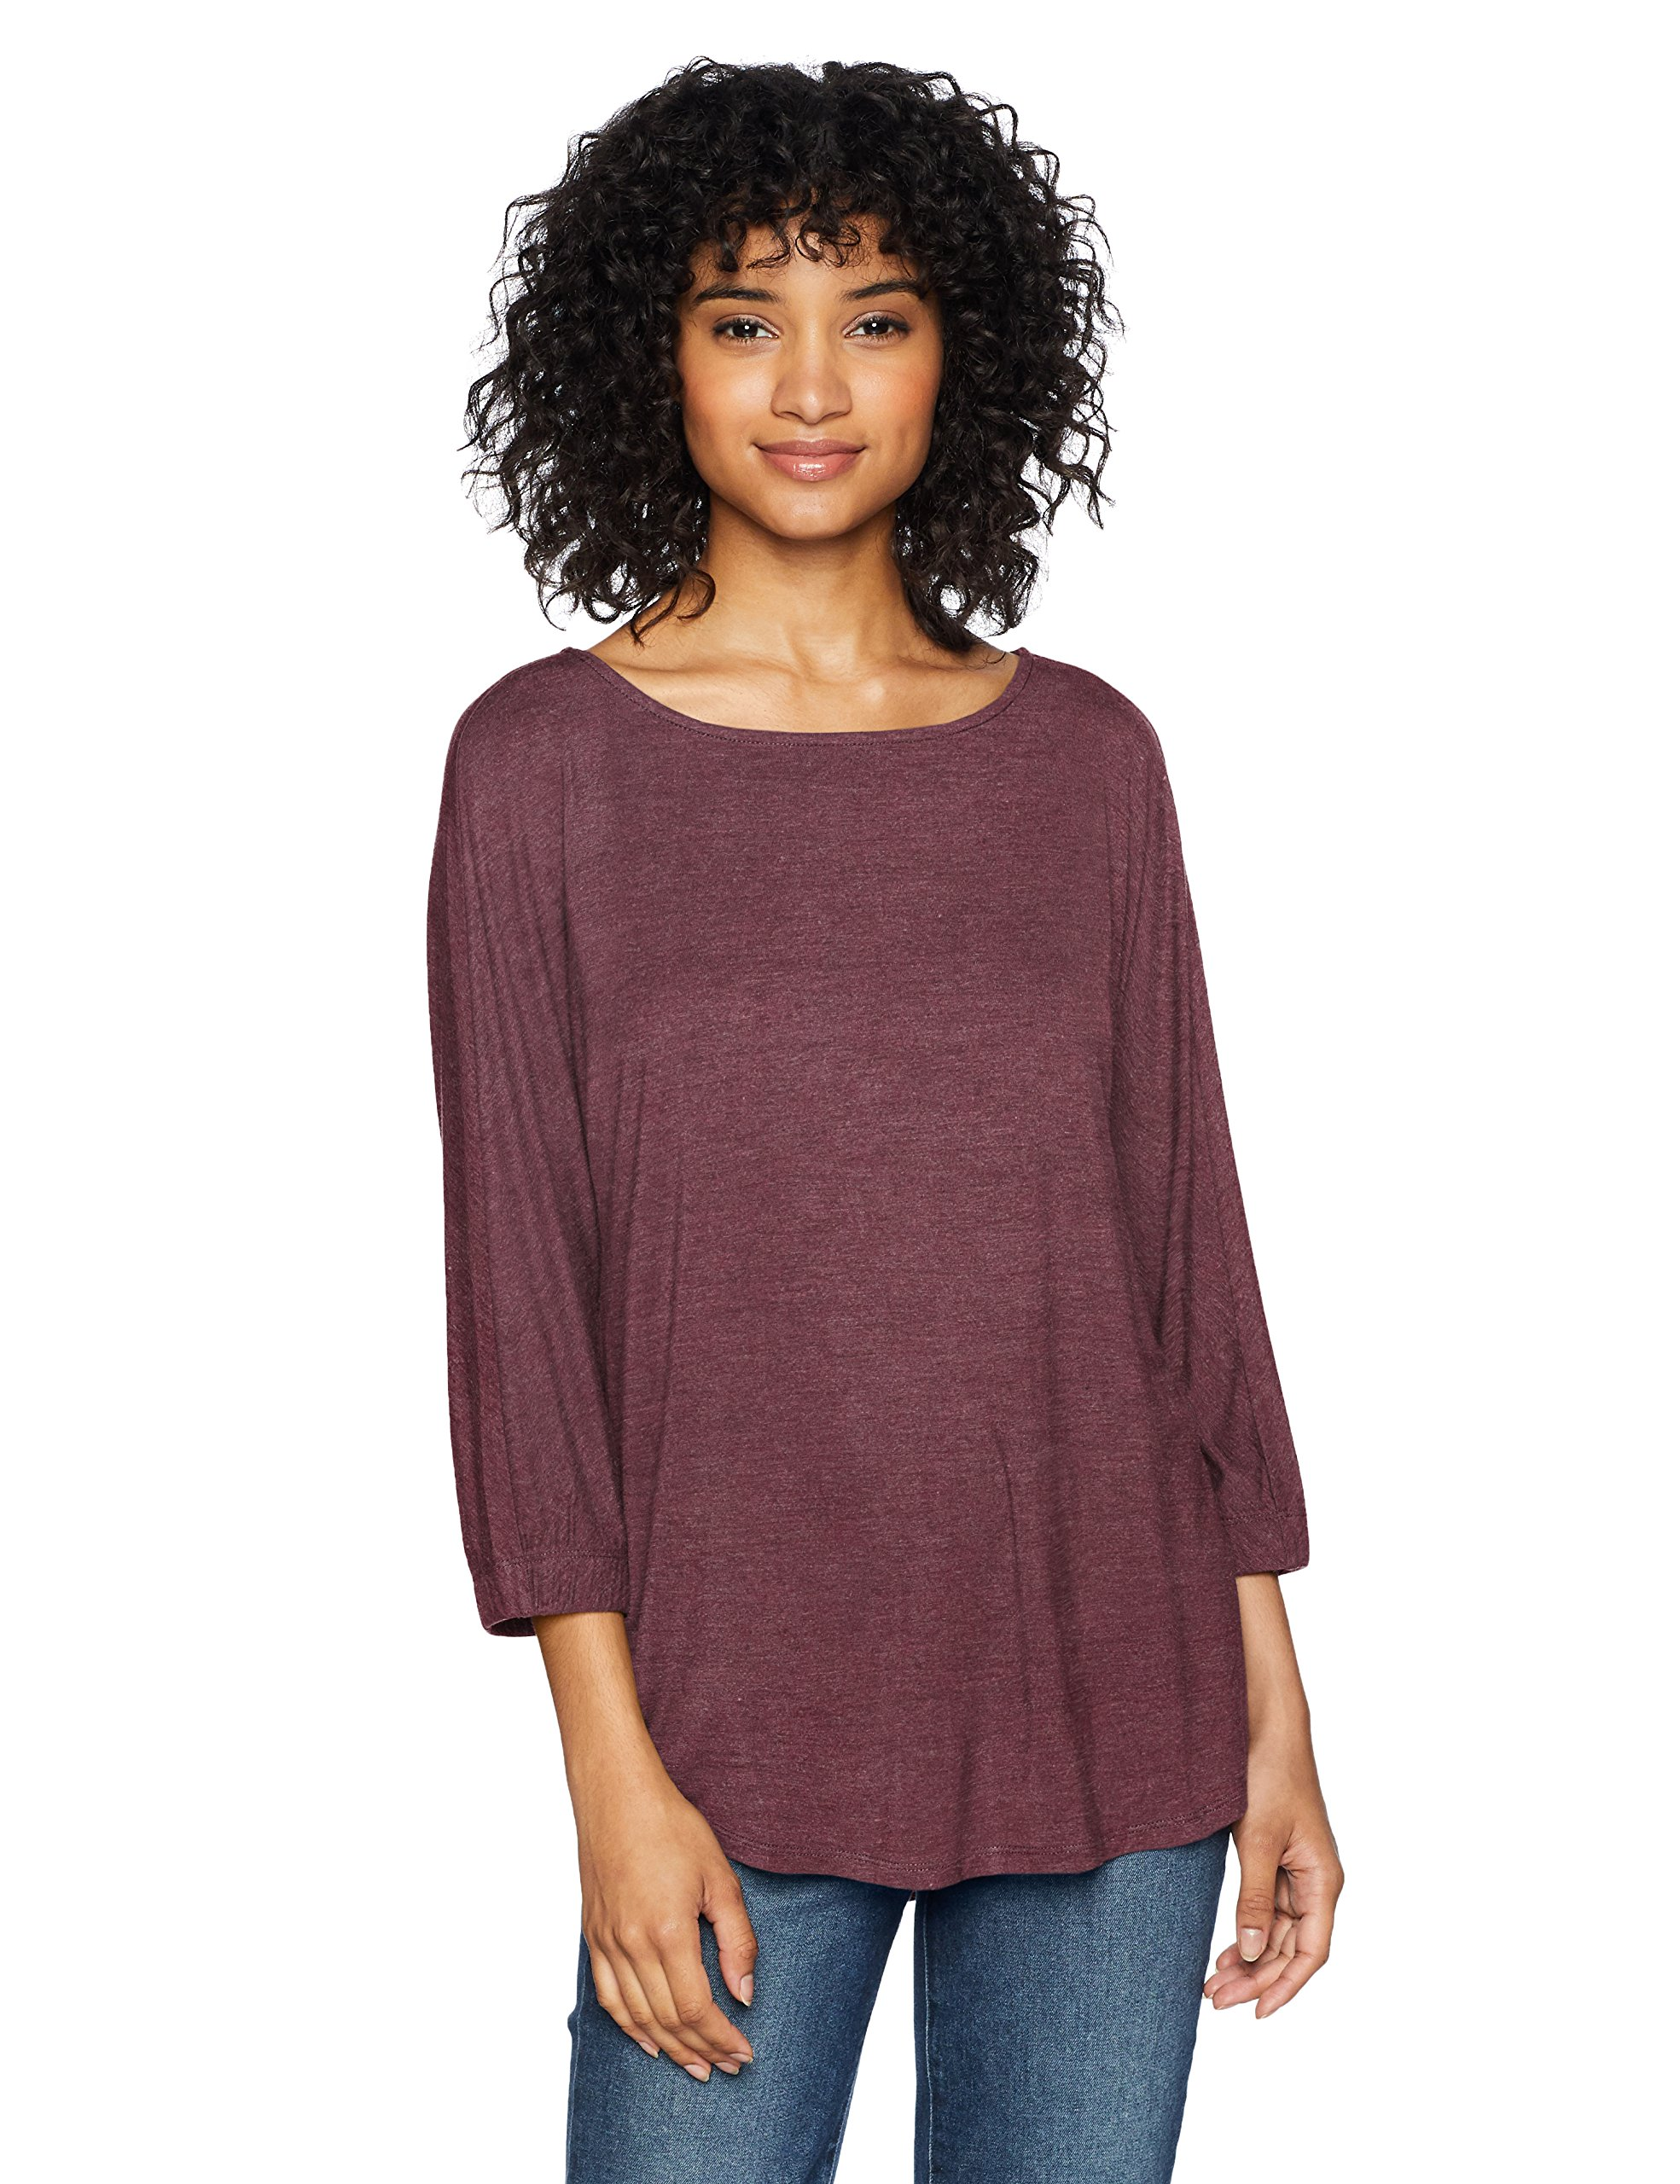 Daily Ritual Women's Jersey Bunch-Sleeve Top, Purple Heather, Large by Daily Ritual